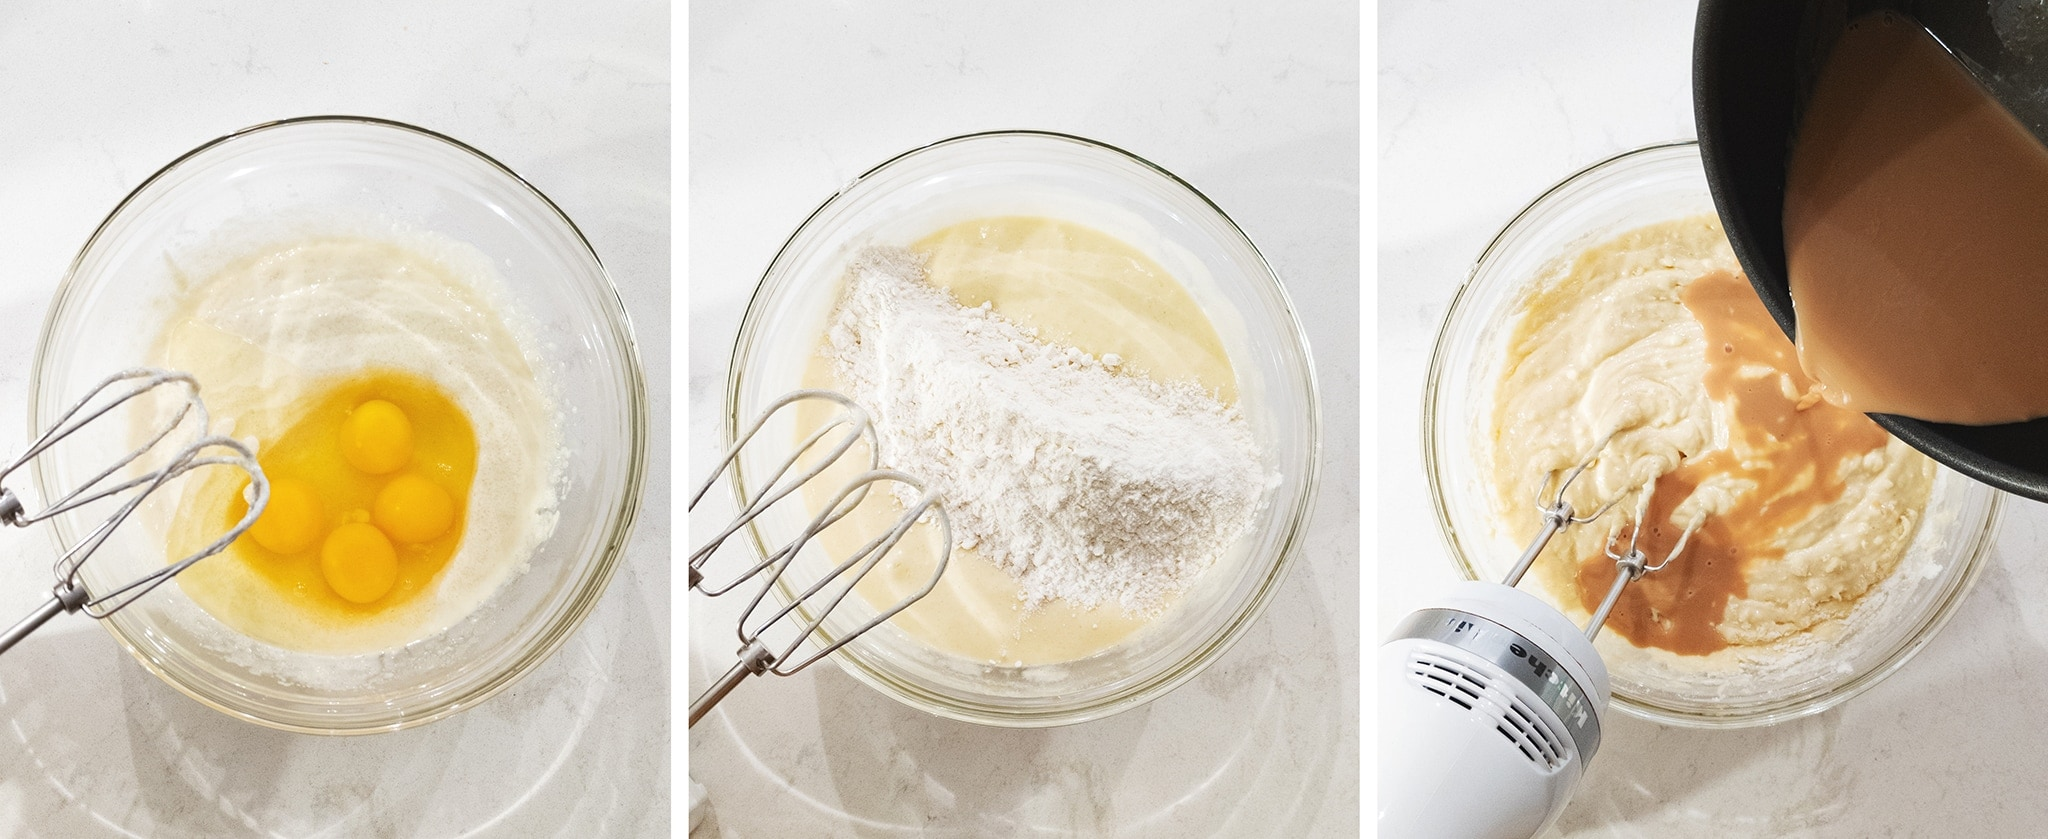 mixing cake batter in a bowl